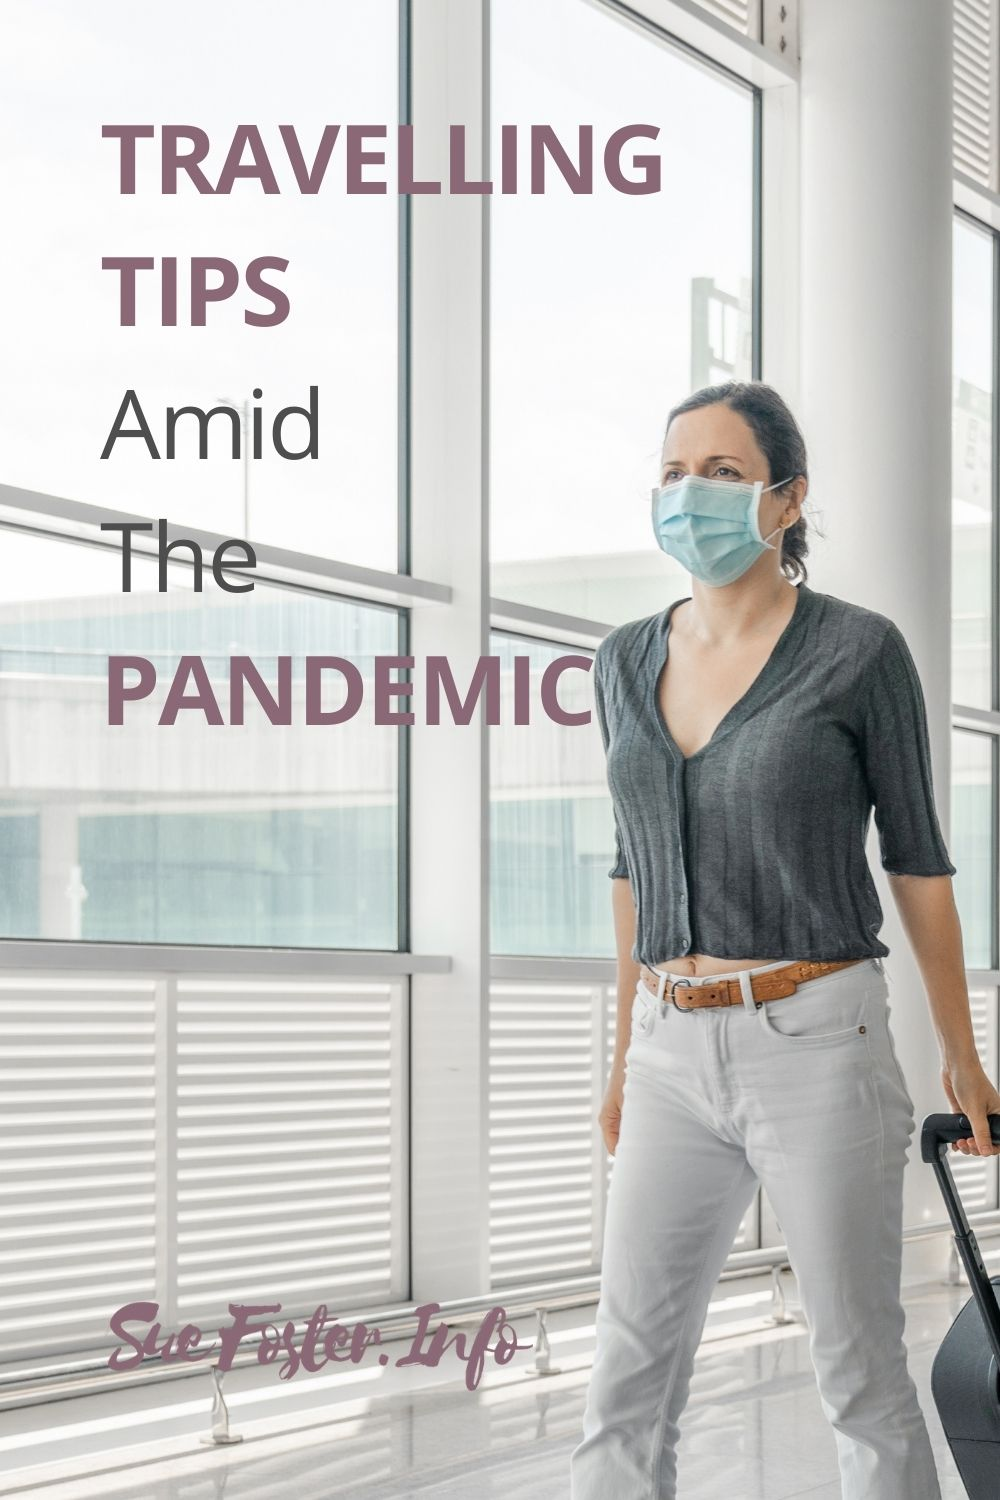 Travelling tips amid the pandemic.